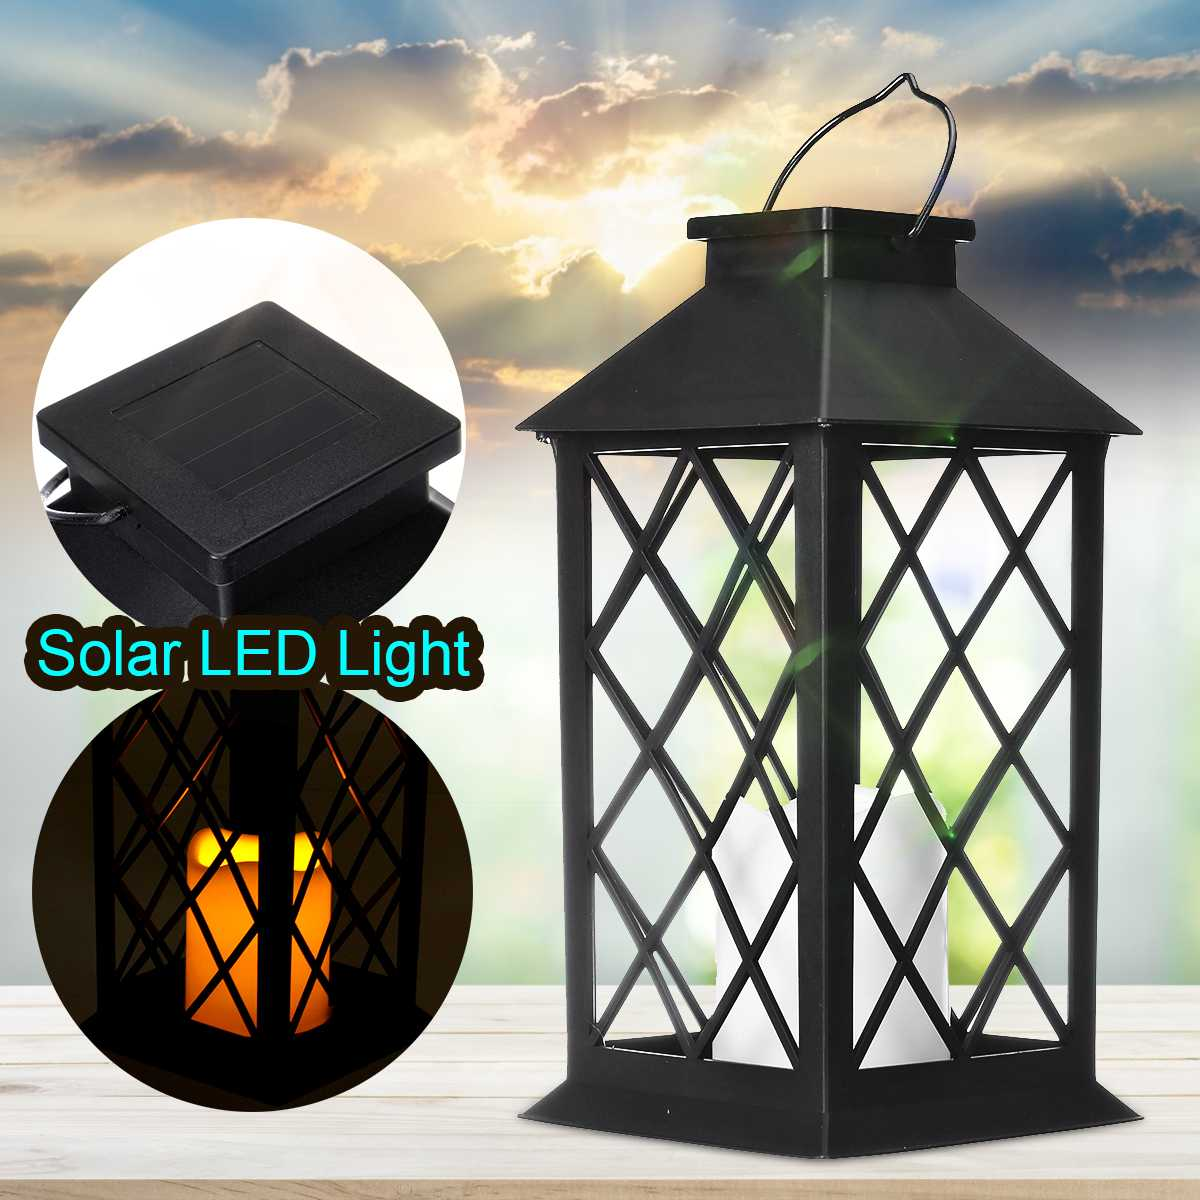 IPX67 Waterproof Solar Powered LED Lantern Hanging Outdoor LED Light With Battery Base For Garden Decoration Lawn solar Lamp